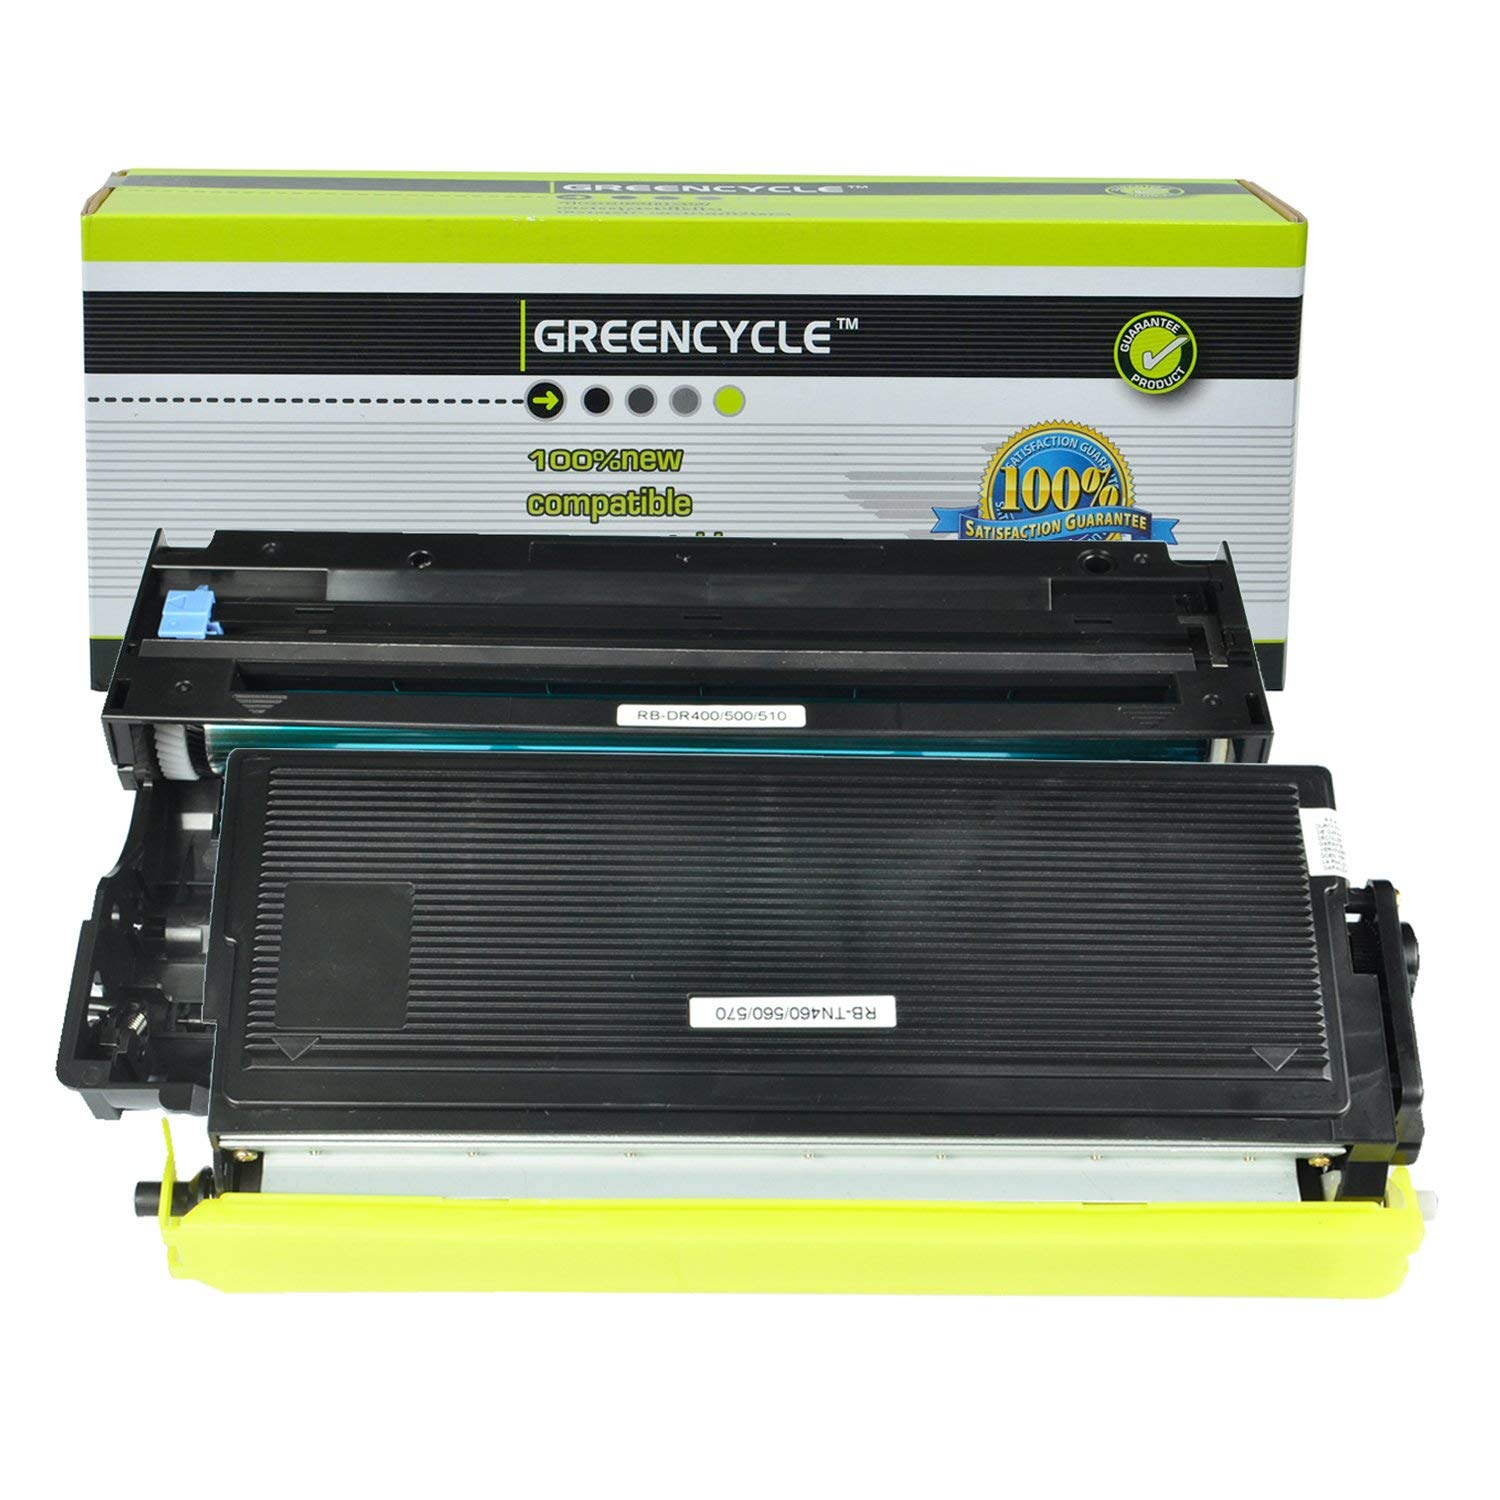 GREENCYCLE 2 Pack Compatible TN560 Black Toner Cartridge and DR500 Drum Unit Replacement High Yield Use with Brother DCP-8020 HL-1650 HL-1850 HL-1870n MFC-8420 MFC-8820DN Printer(1 Toner, 1 Drum)